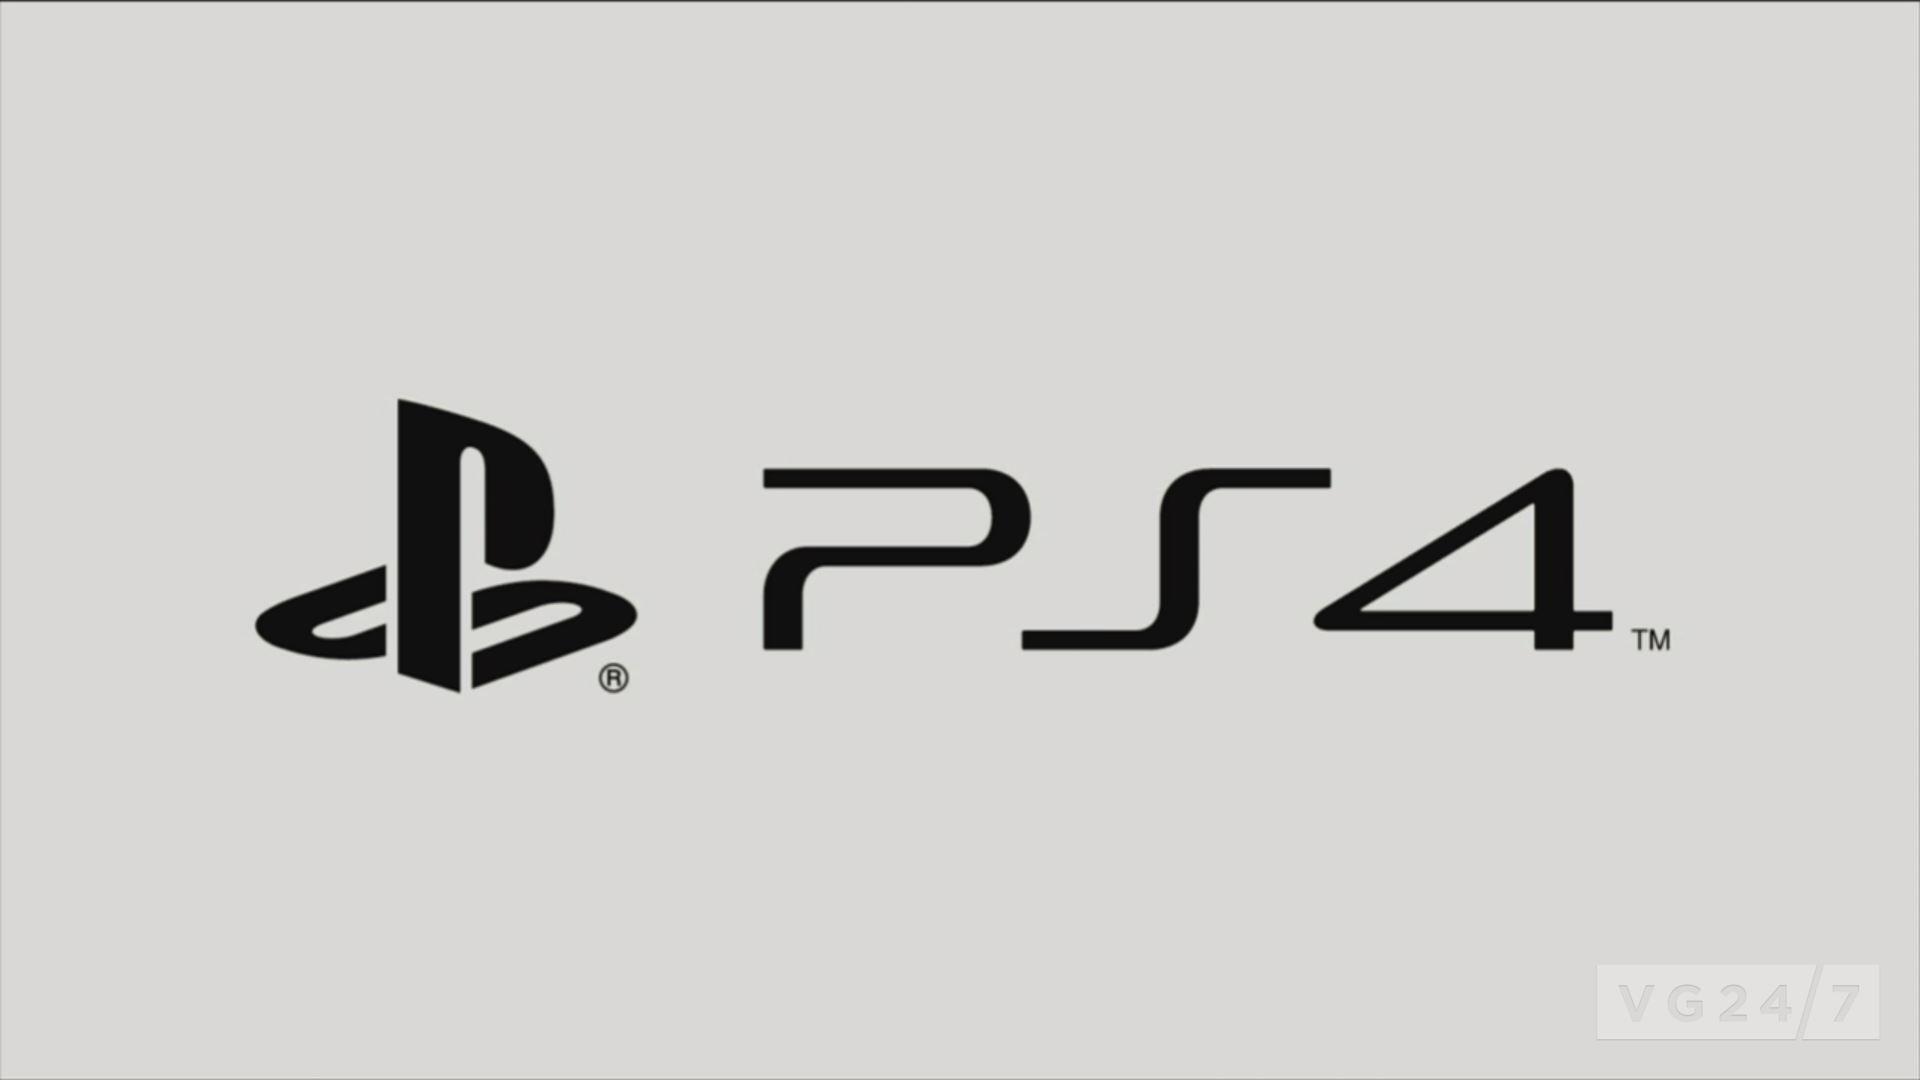 PS4-logo-white